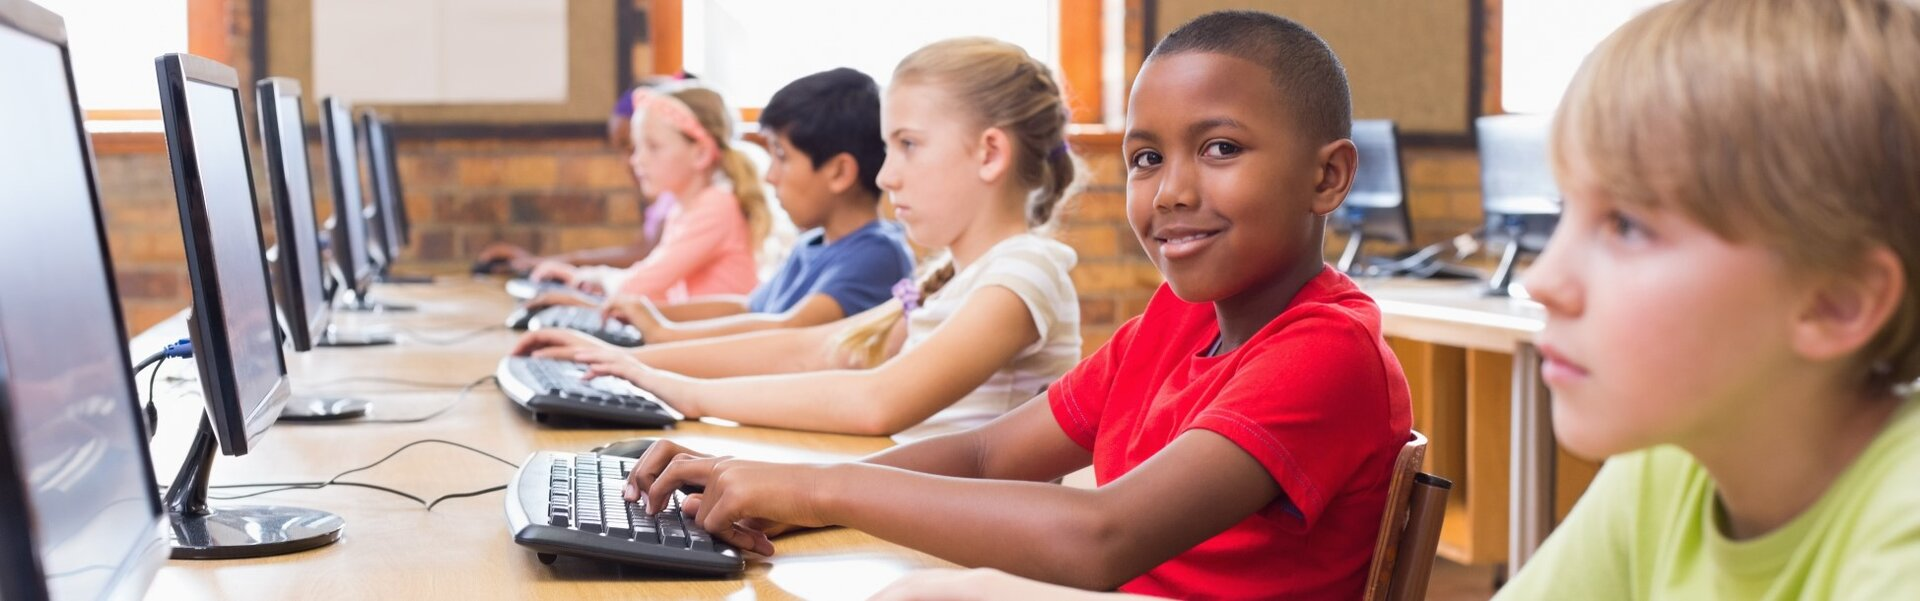 How to Keep Students in Line While They're Online